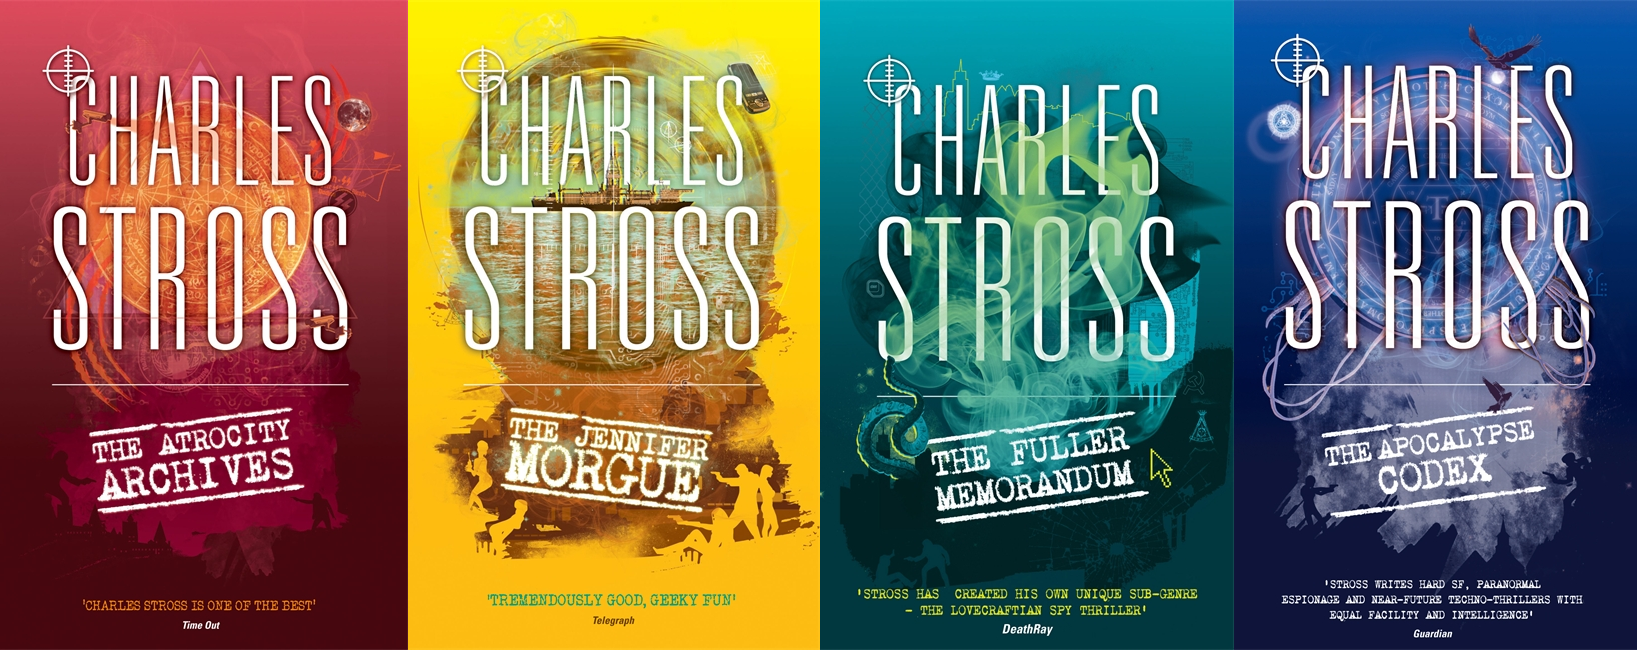 The covers for supernatural spy series The Laundry Files by Charles Stross